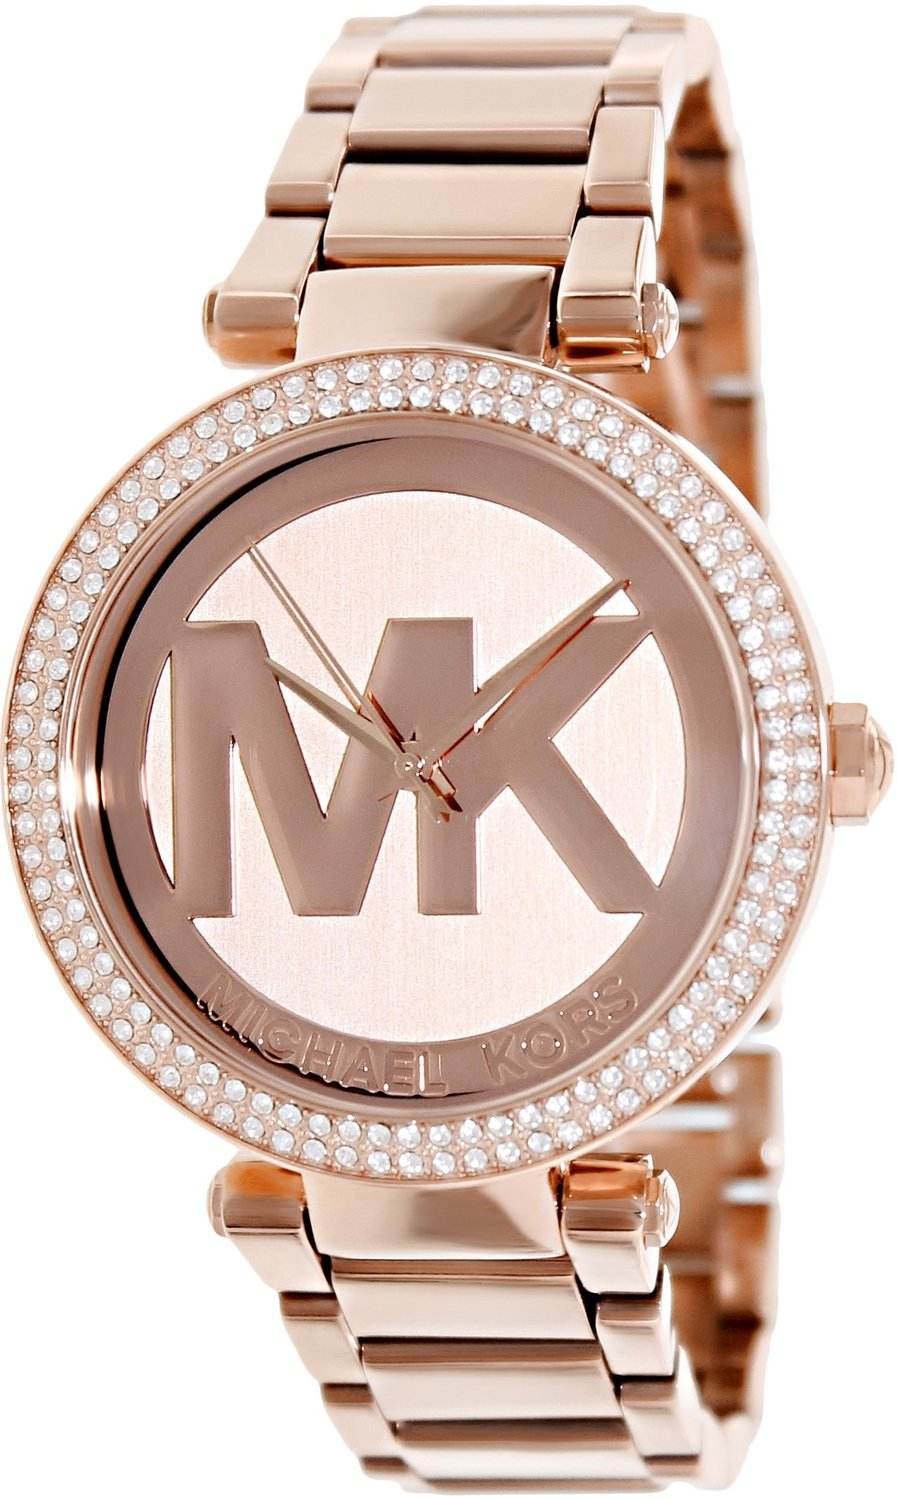 com: Michael Kors MK5865 Women\'s Watch: Michael Kors: Watches